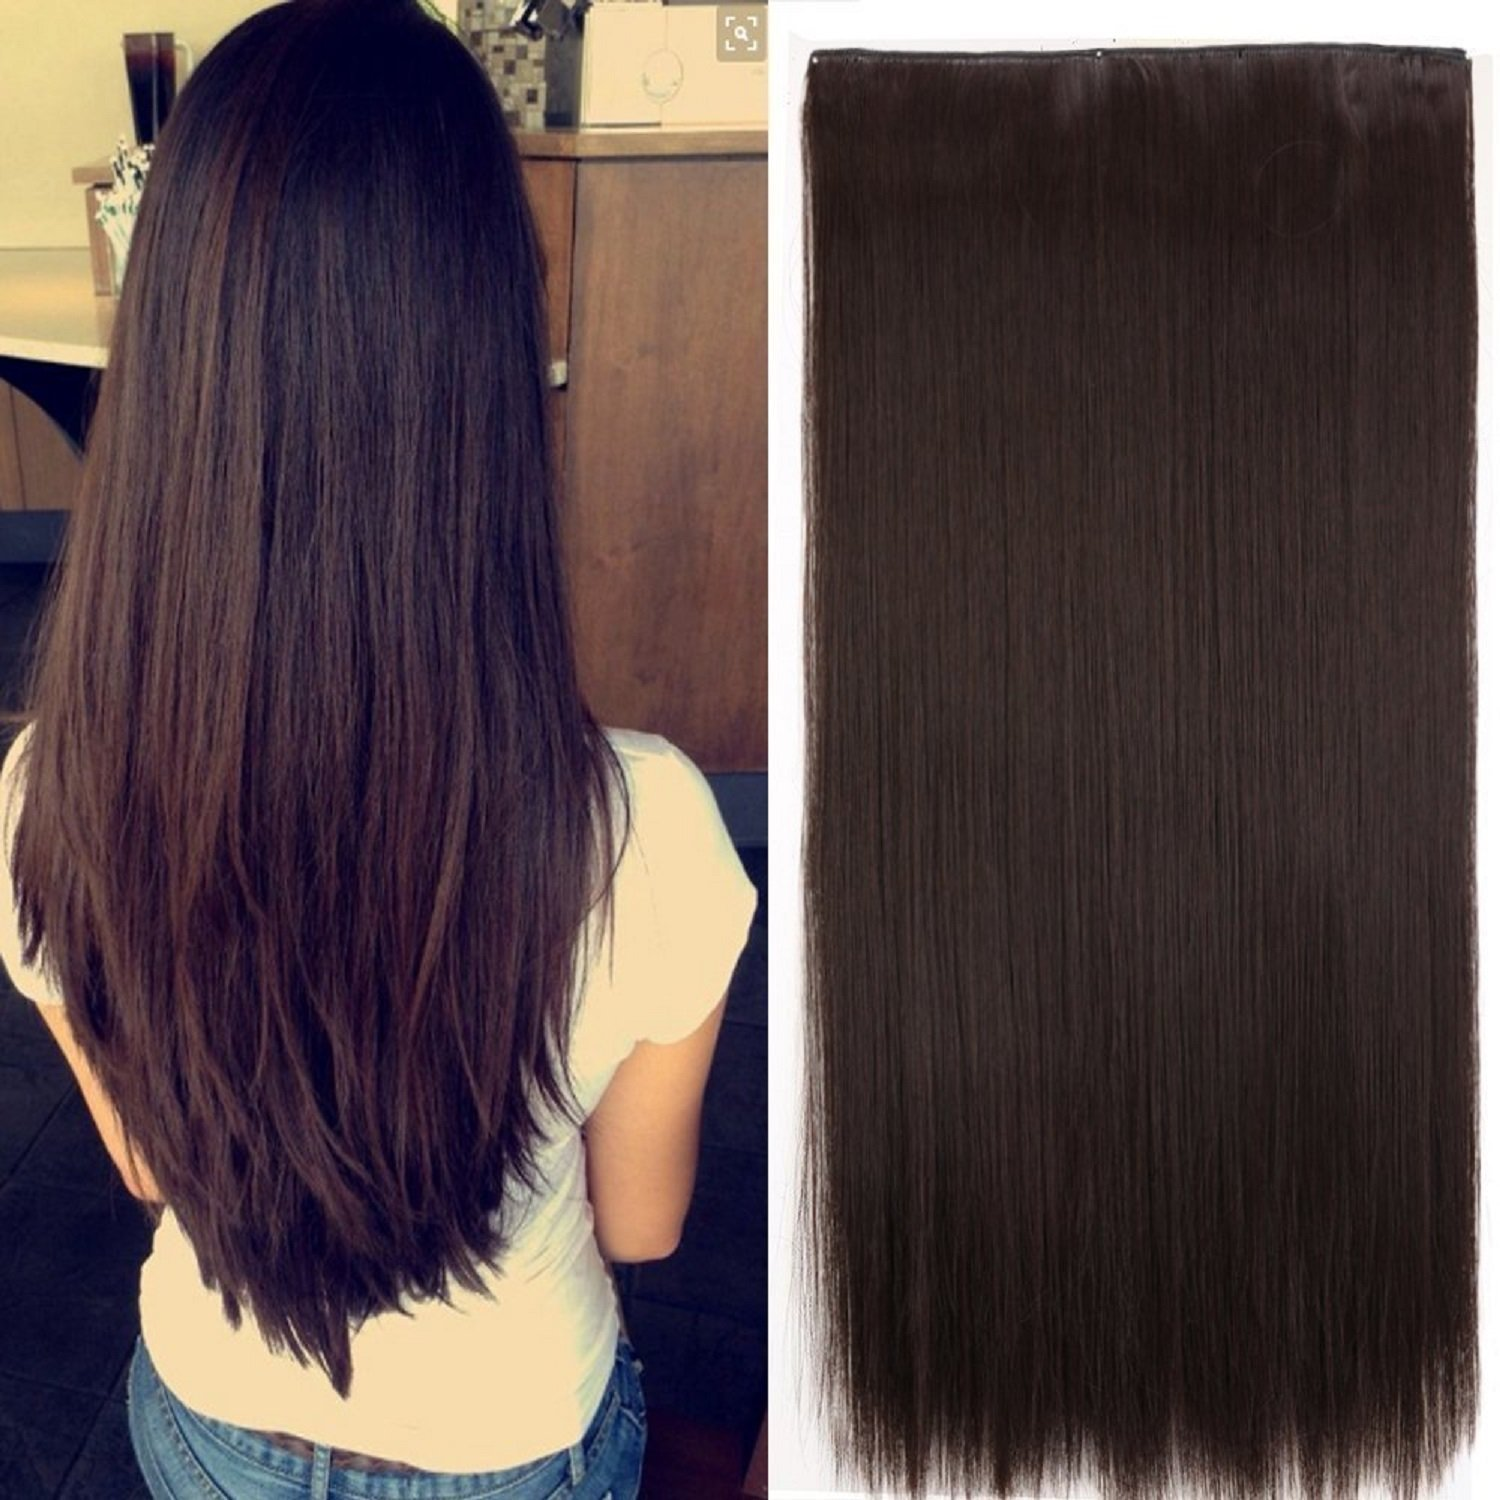 Ekan 5 Clips Hair Extension For Women And Girls Wedding Wear Straight Hair Extensions 26 Inches Dark Brown Pack Of 1 Amazon In Beauty